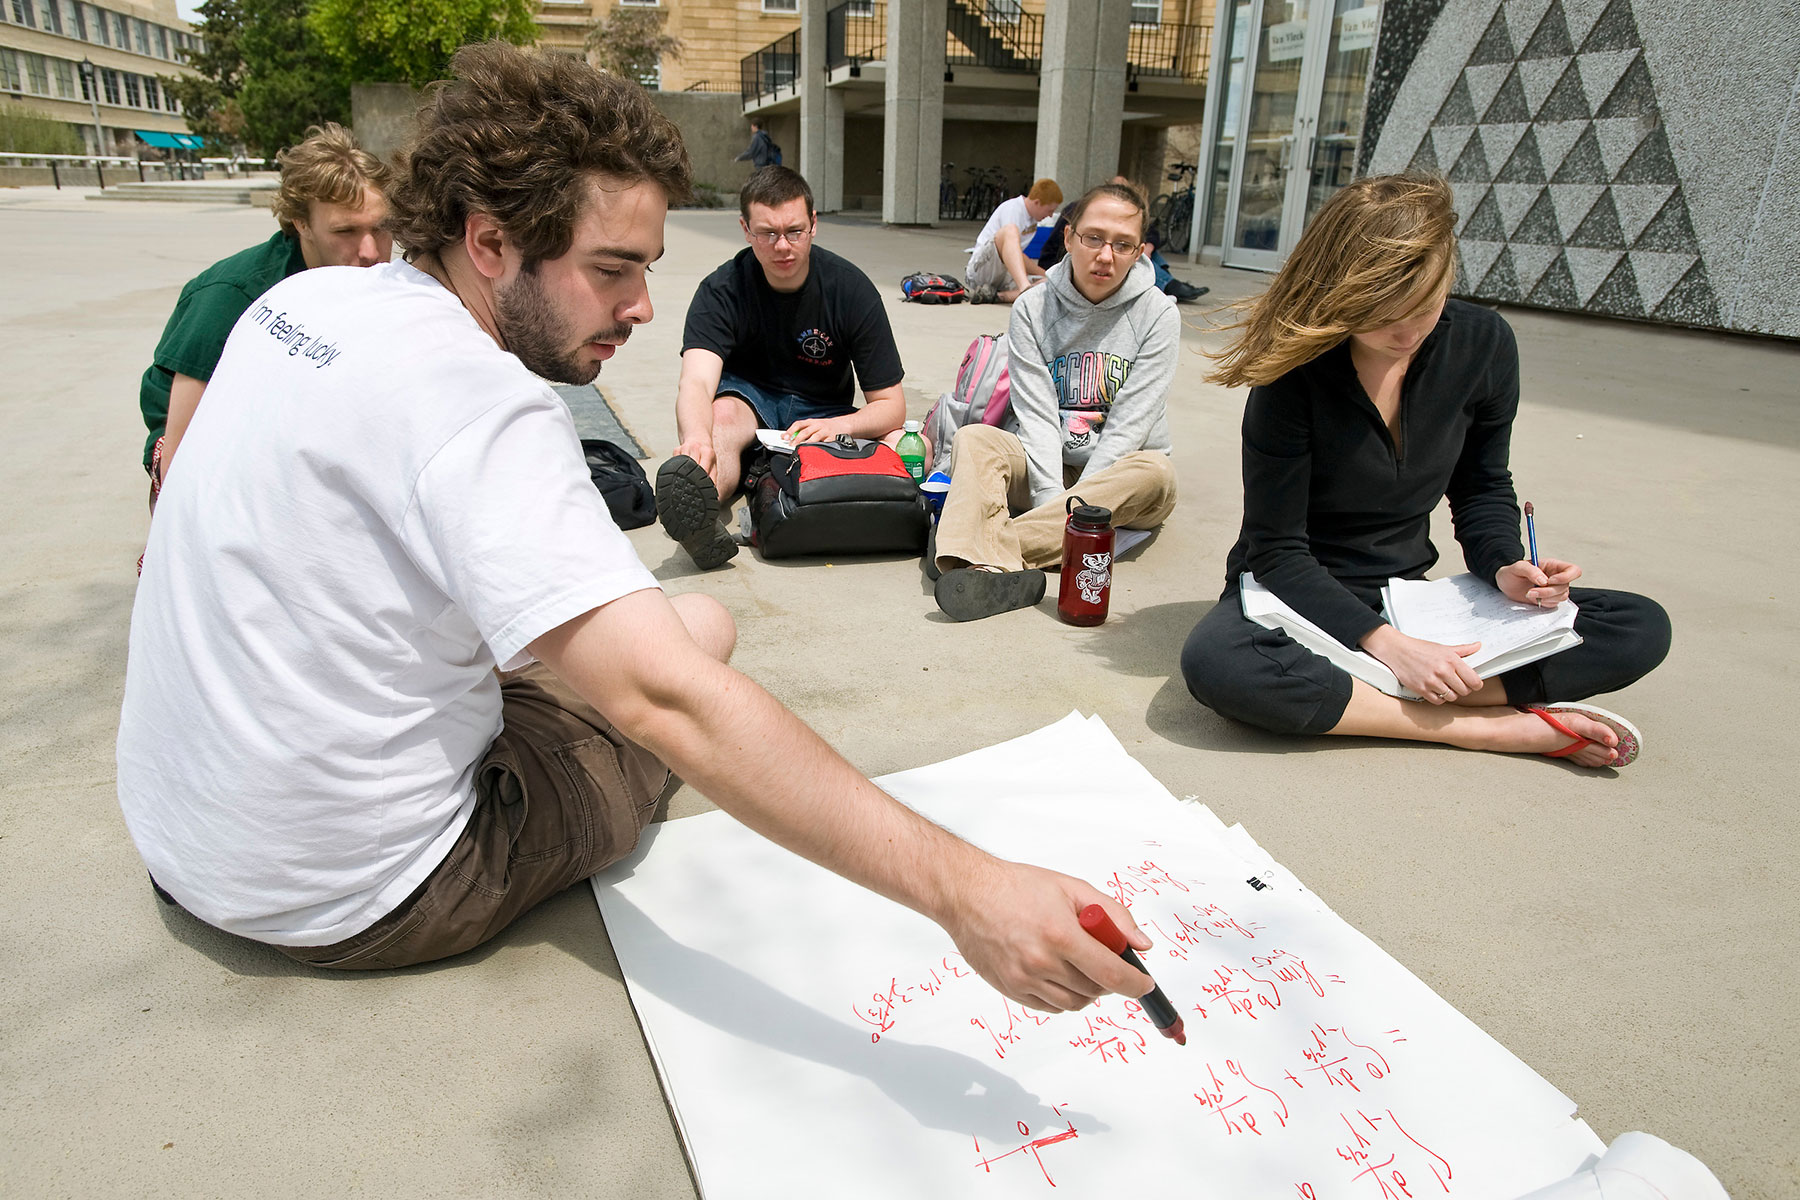 Students studying math on the sidewalk